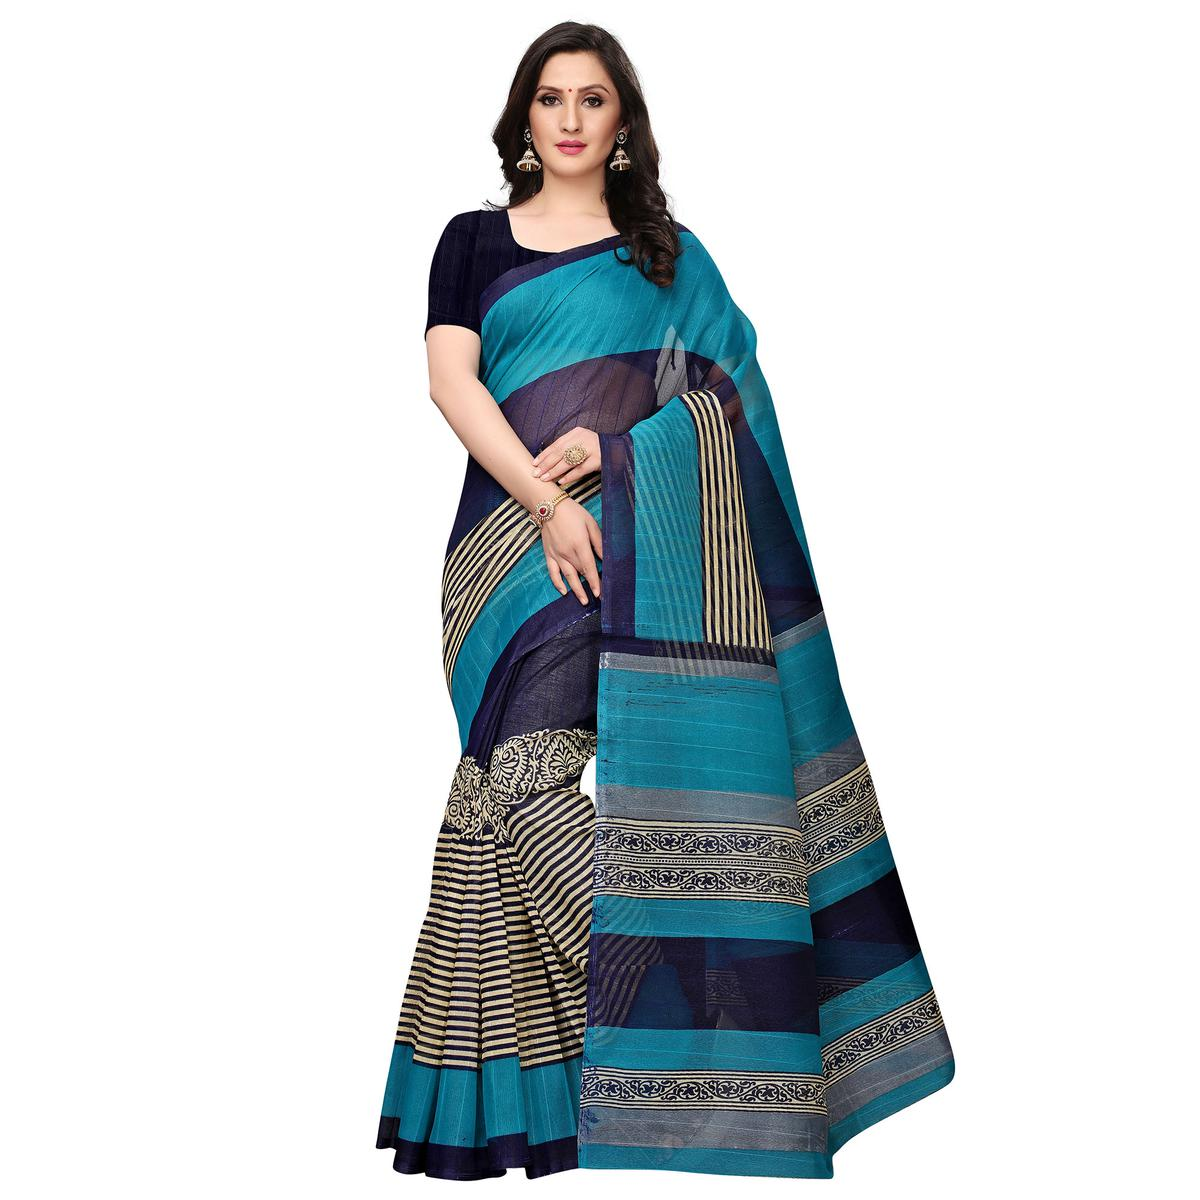 Flattering Teal-Navy Blue Colored Casual Printed Bhagalpuri Silk Saree